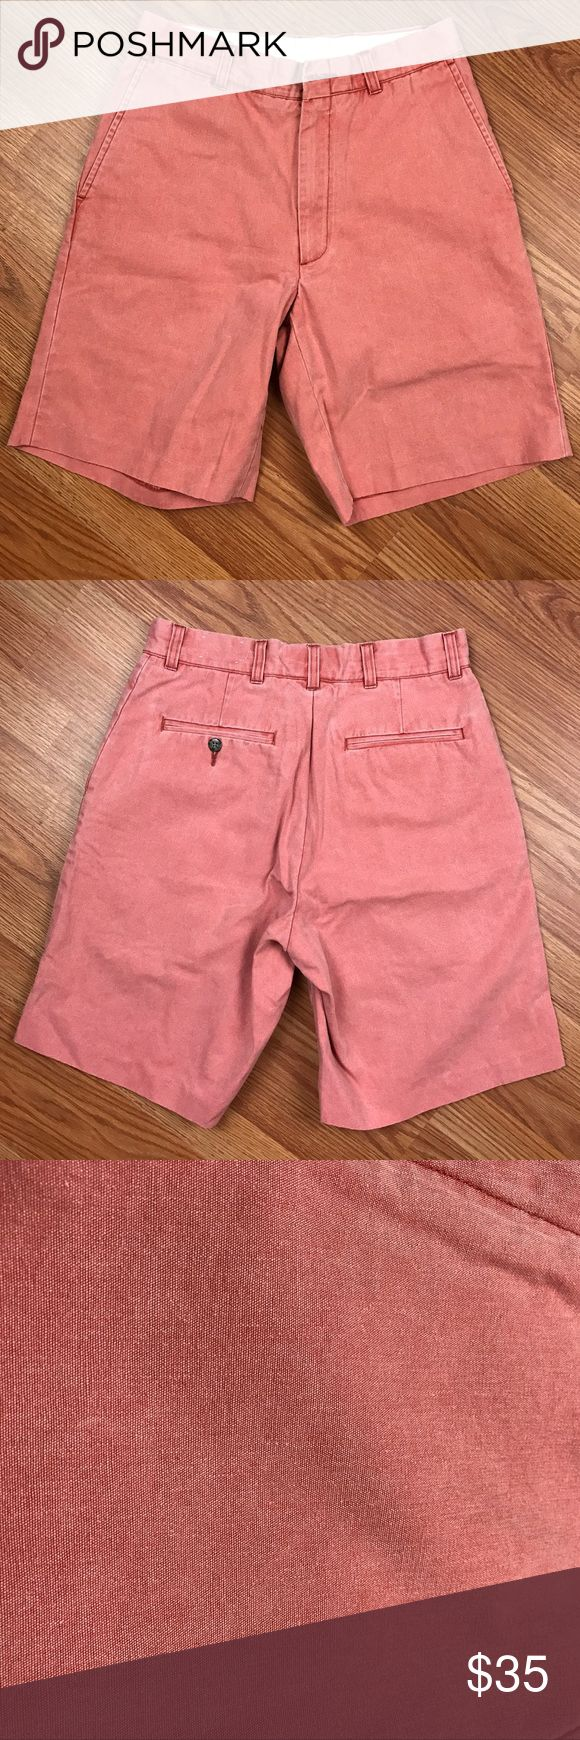 "Murray's Toggery Shop Bermuda Shorts Murray's Toggery Shop Nantucket Reds collection Men's plain front Bermuda shorts.  Size 30  Waist (laying flat) 14""  Inseam 9 1/2""  Rise 11"" Murray's Toggery Shop Shorts Flat Front"